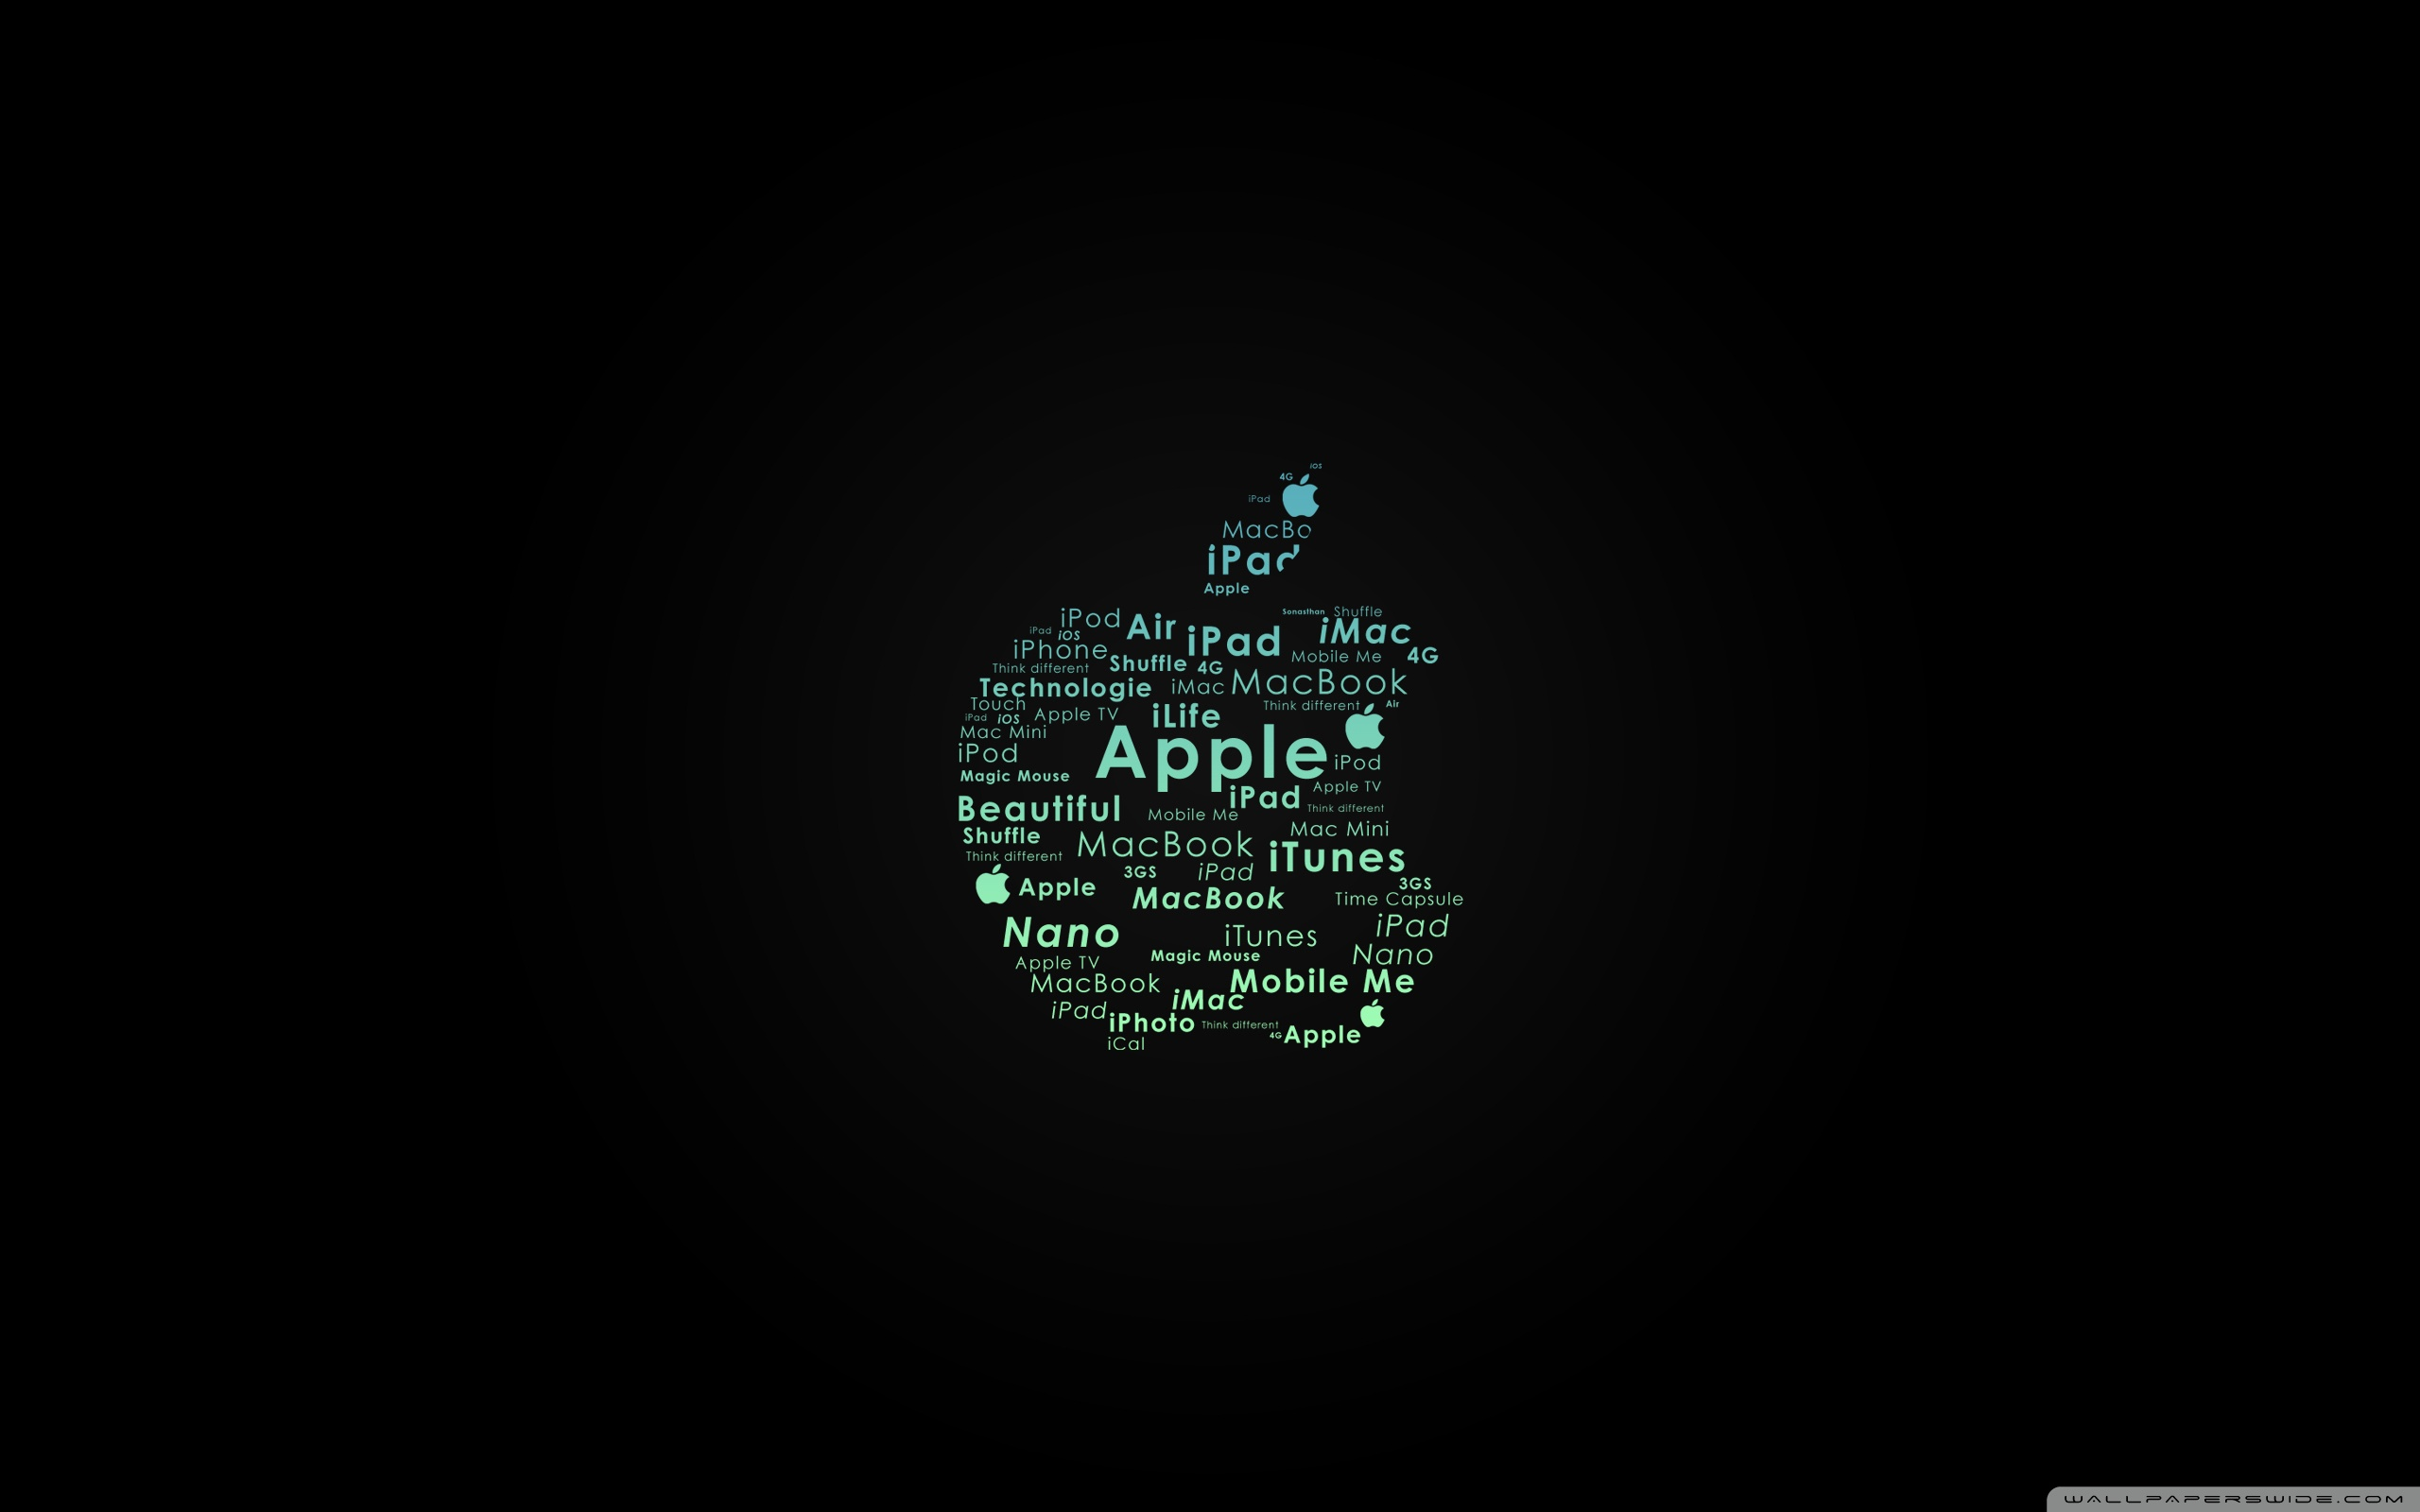 apple logo typography ❤ 4k hd desktop wallpaper for 4k ultra hd tv